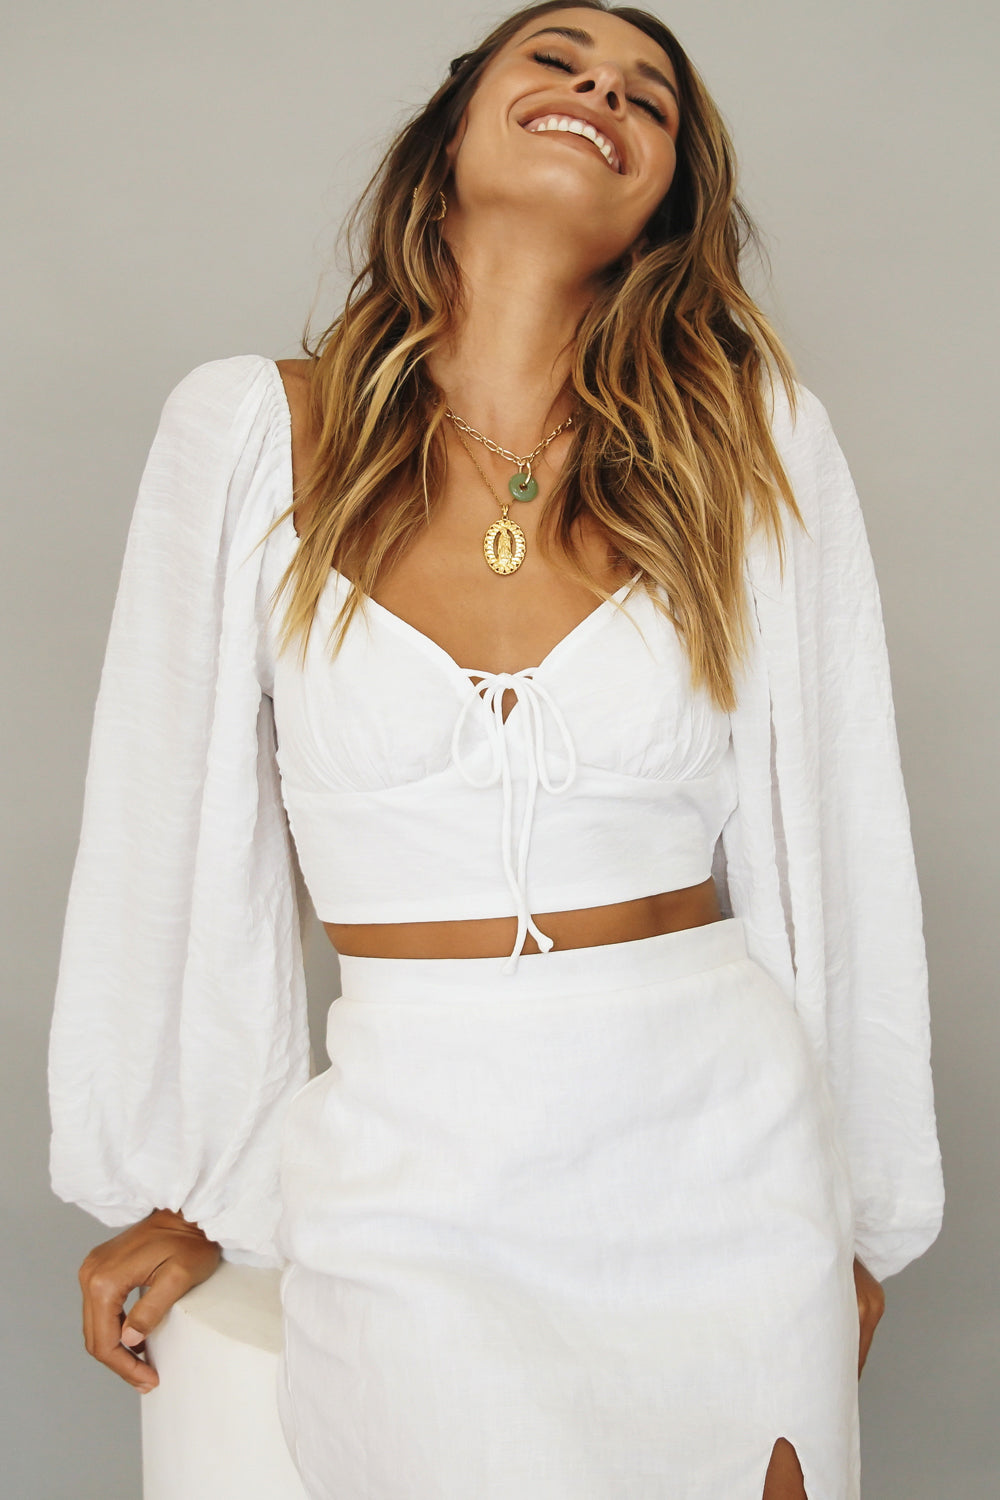 Tuscan Dreams Tie Back Top // White